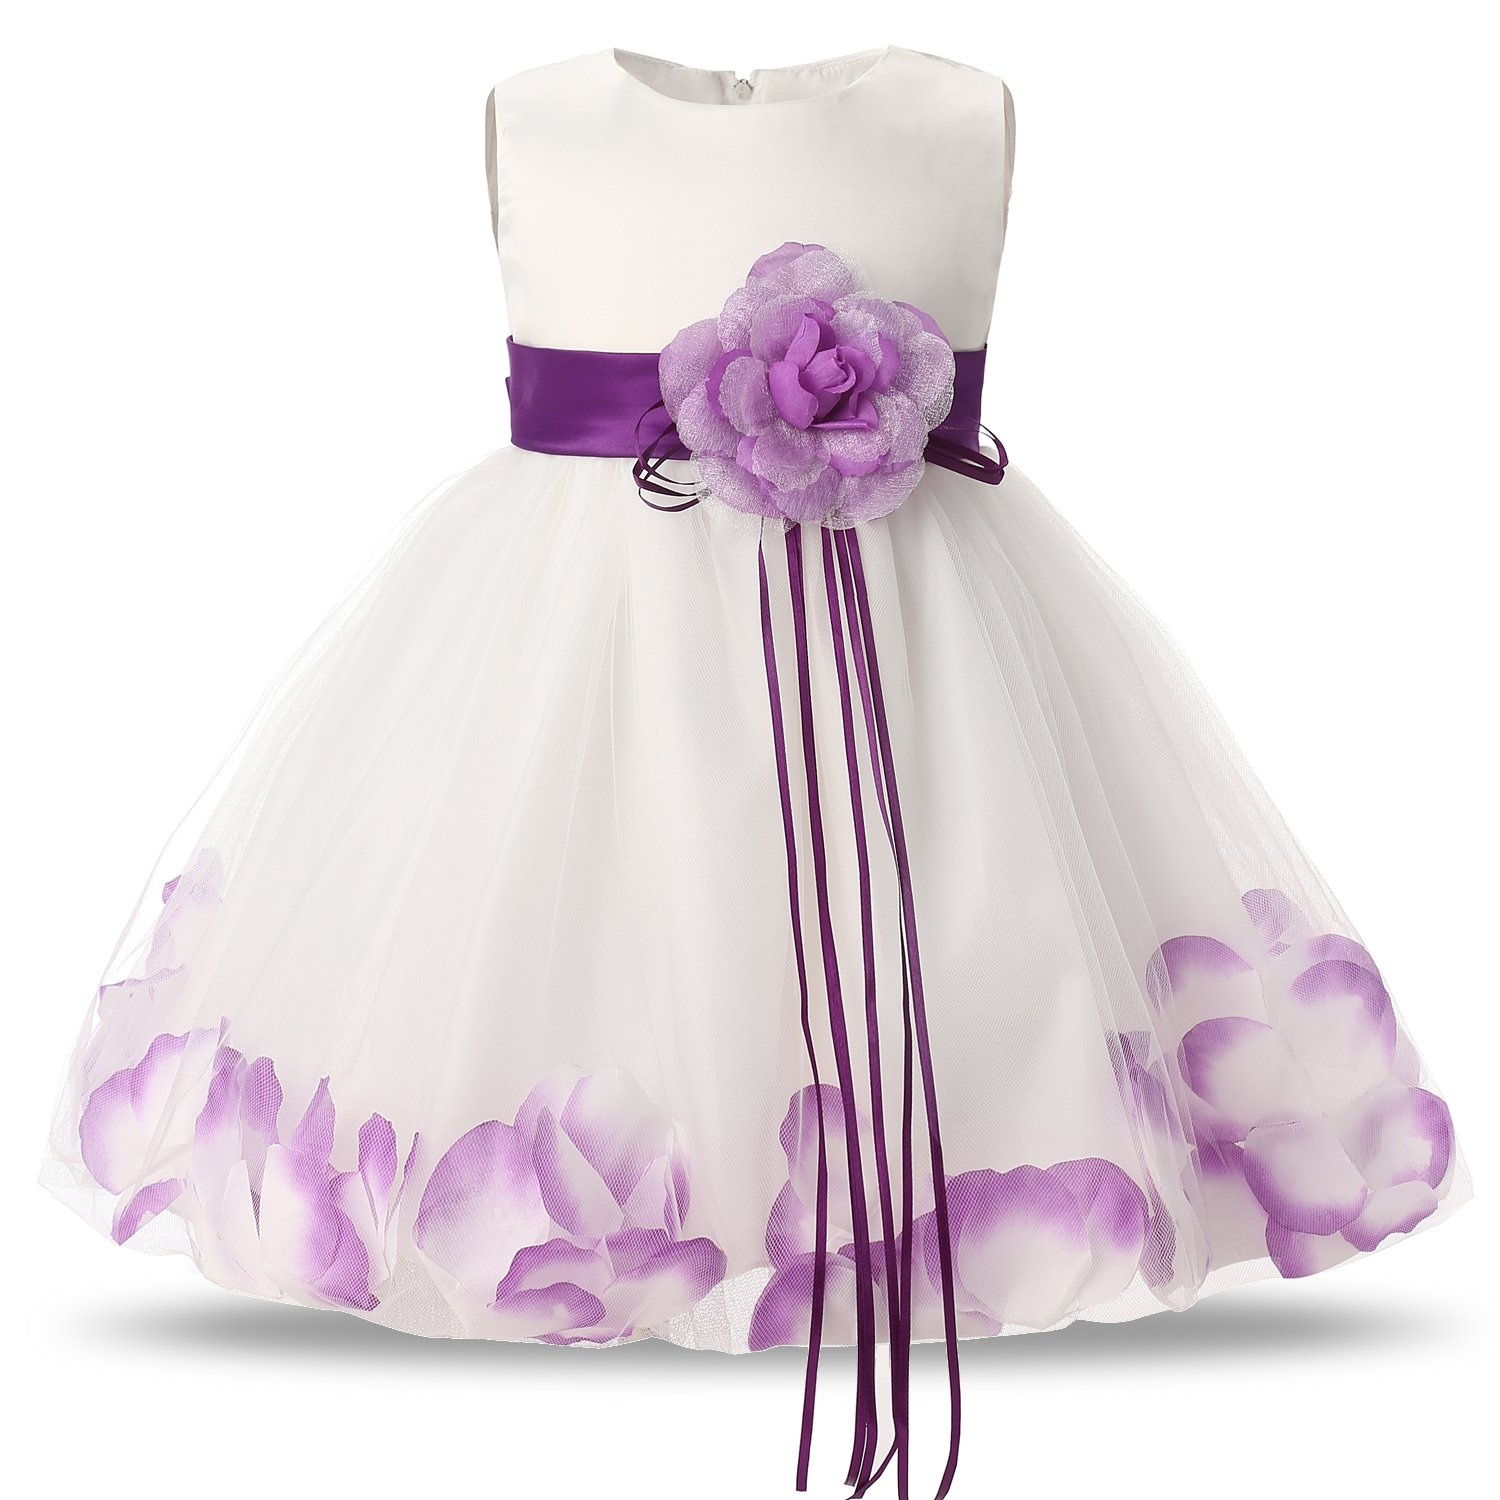 a26d90c2204 Galleon - NNJXD Girl Tutu Flower Petals Bow Bridal Dress For Toddler Girl  Size